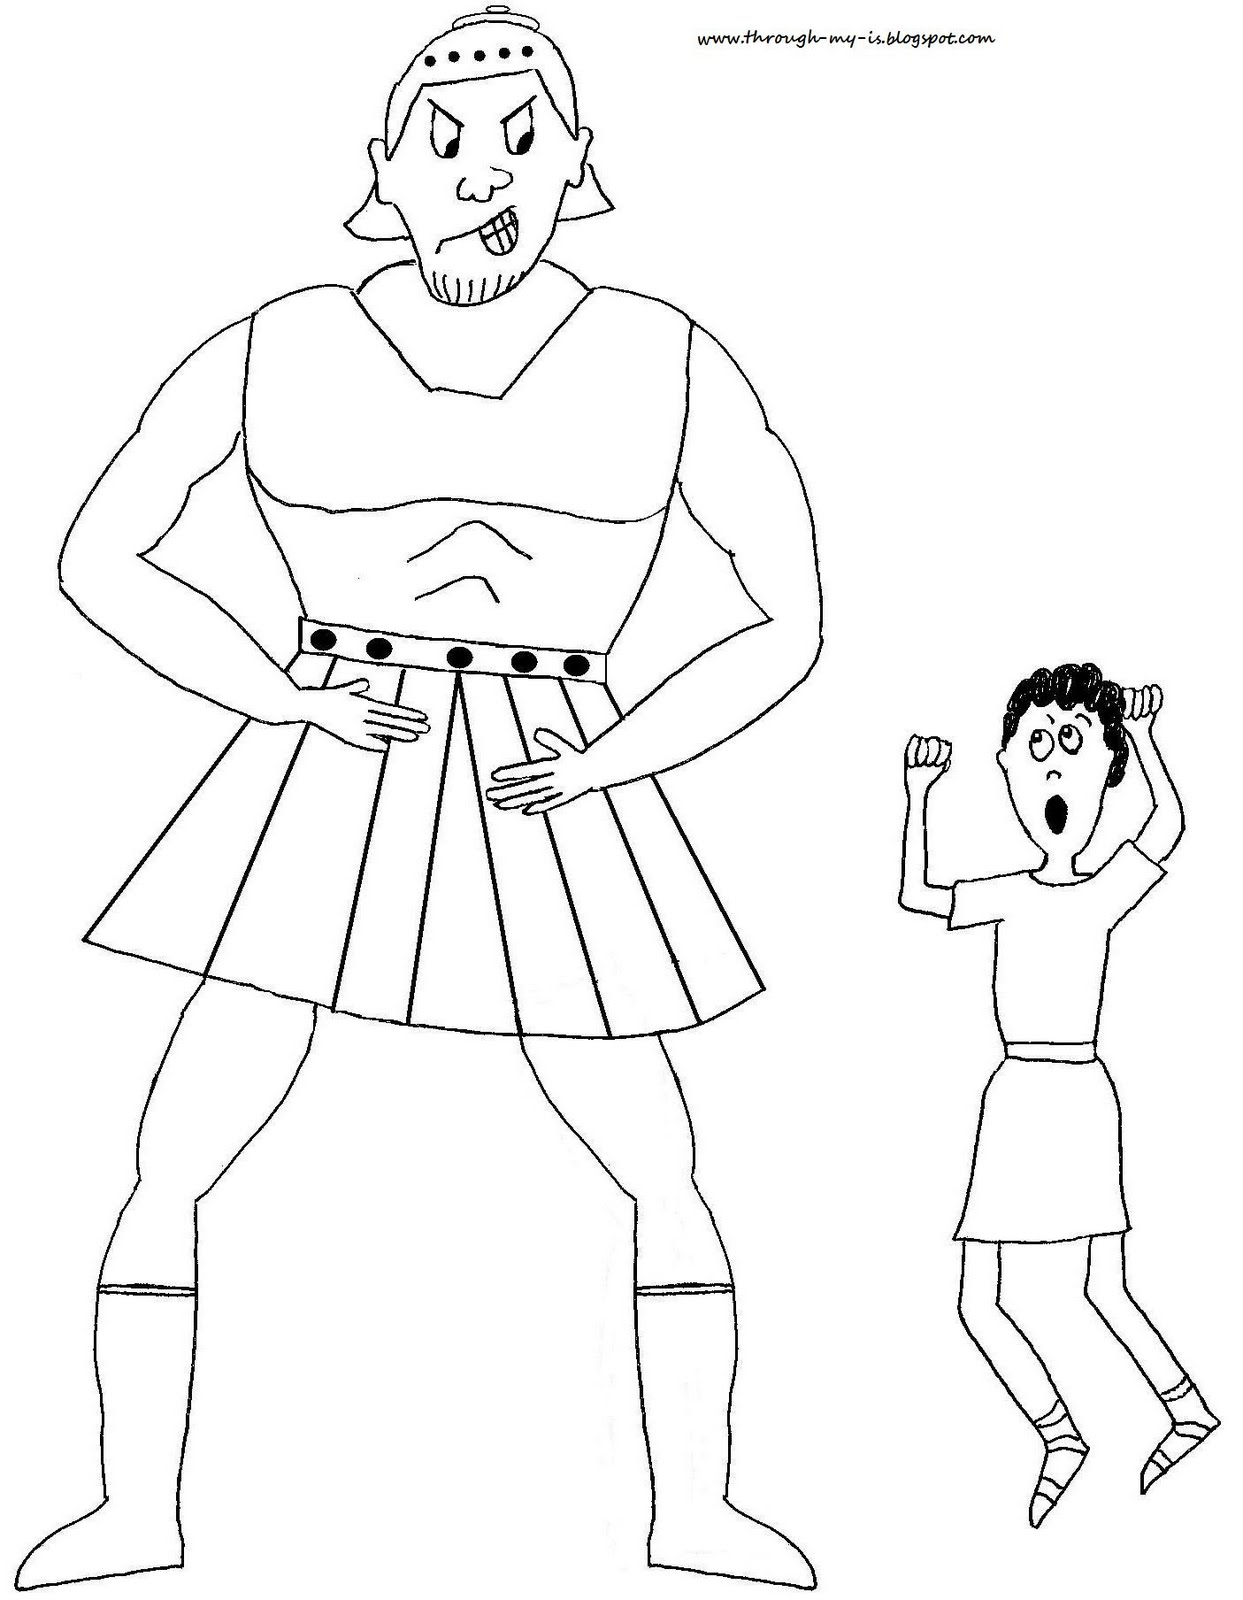 Free coloring page david and goliath - David And Goliath Craft Free Printable